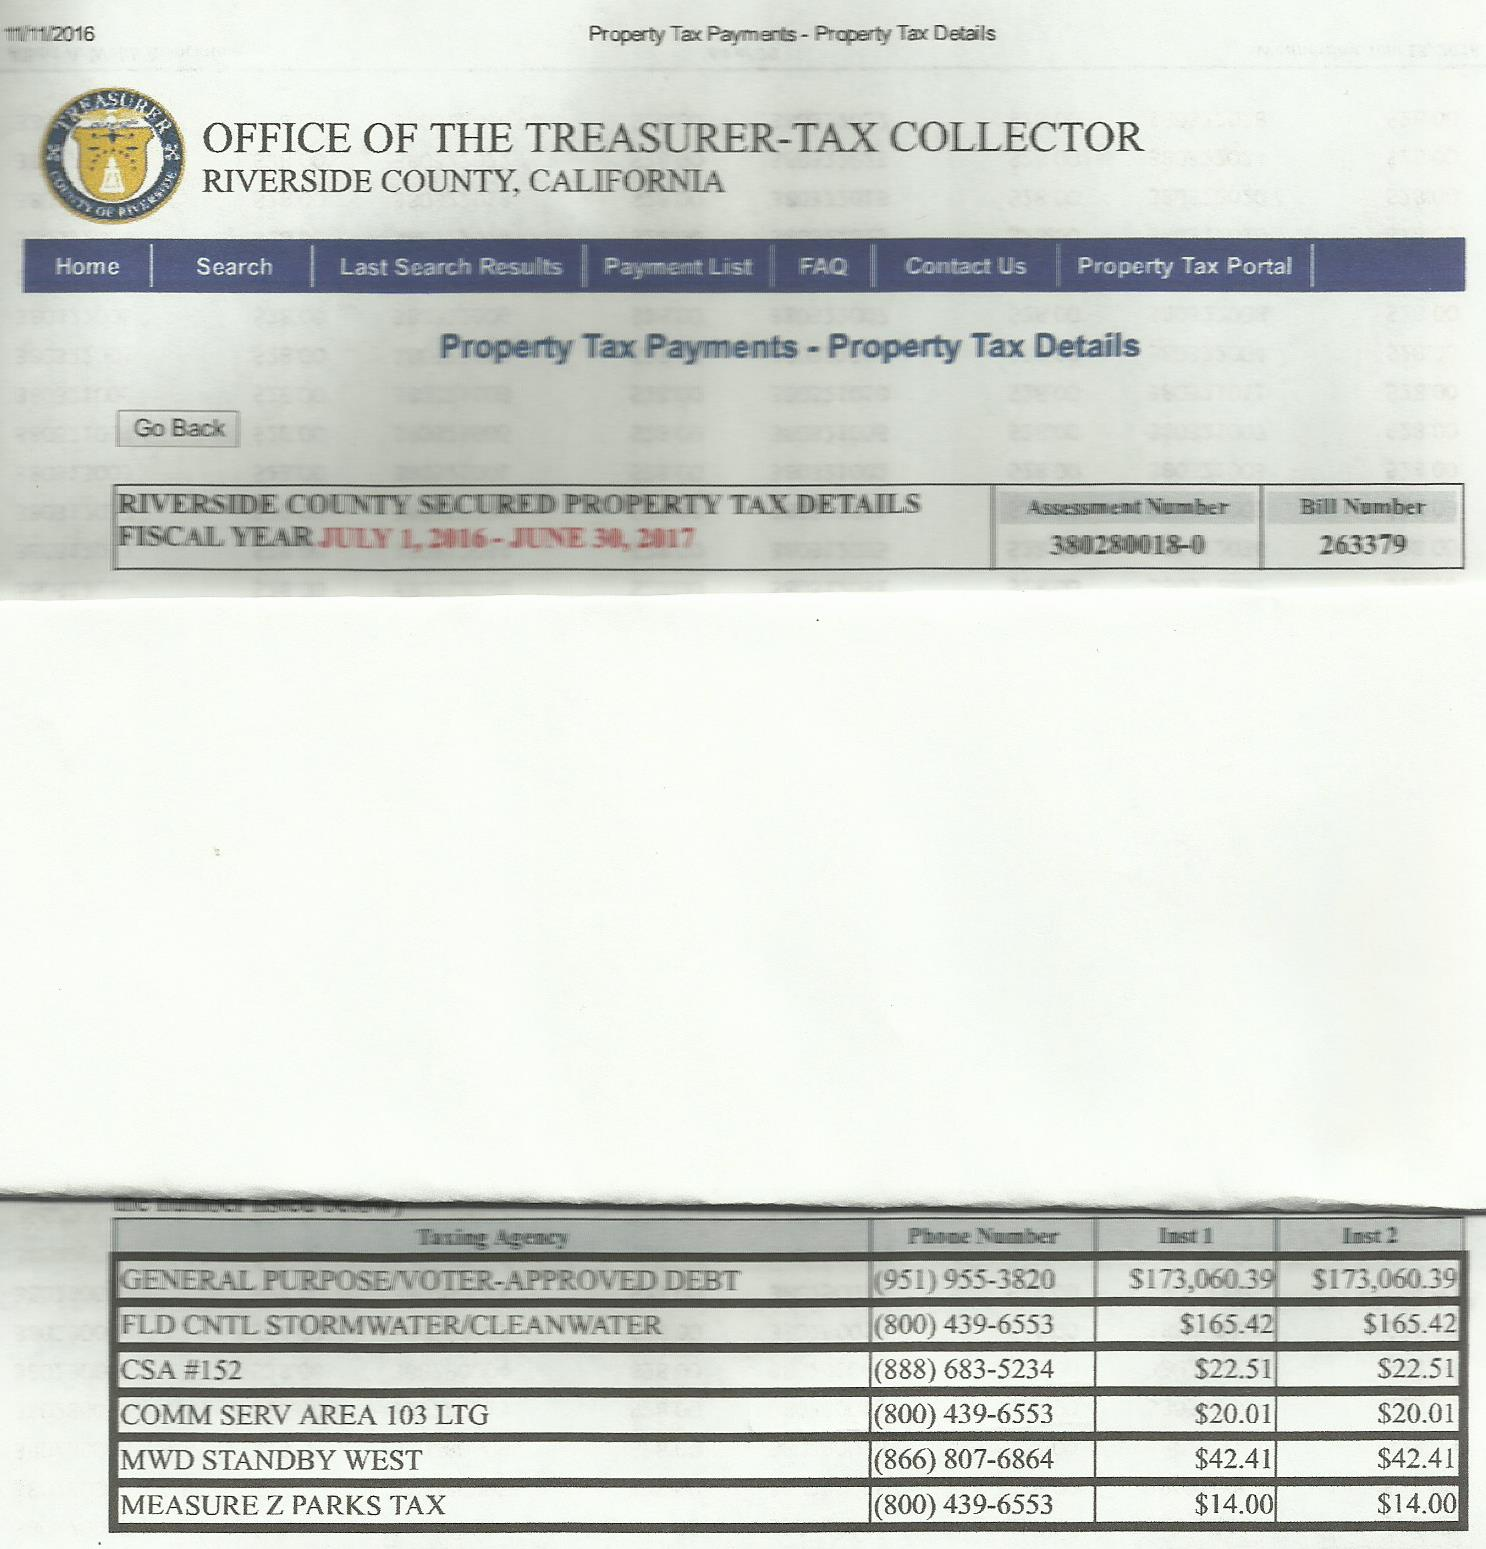 Tax Bill for Gables Oak Creek Apartments. notice the Measure Tax at the bottom.